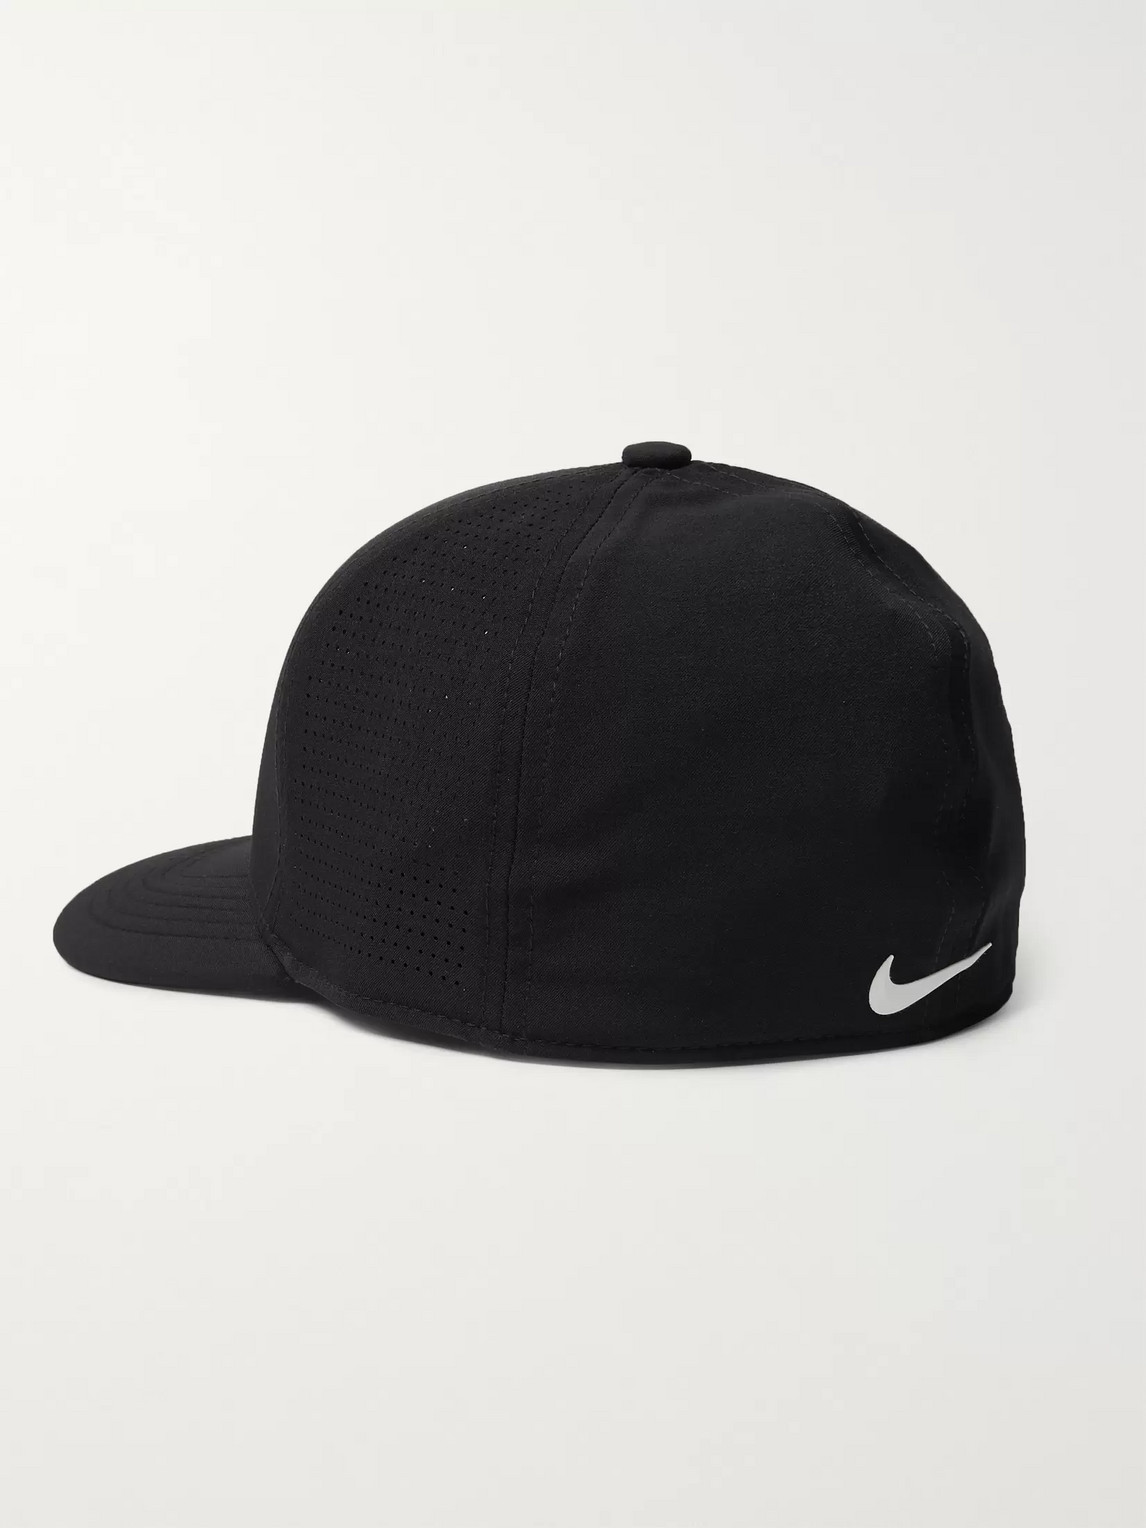 Nike Accessories AEROBILL CLASSIC 99 FITTED GOLF CAP